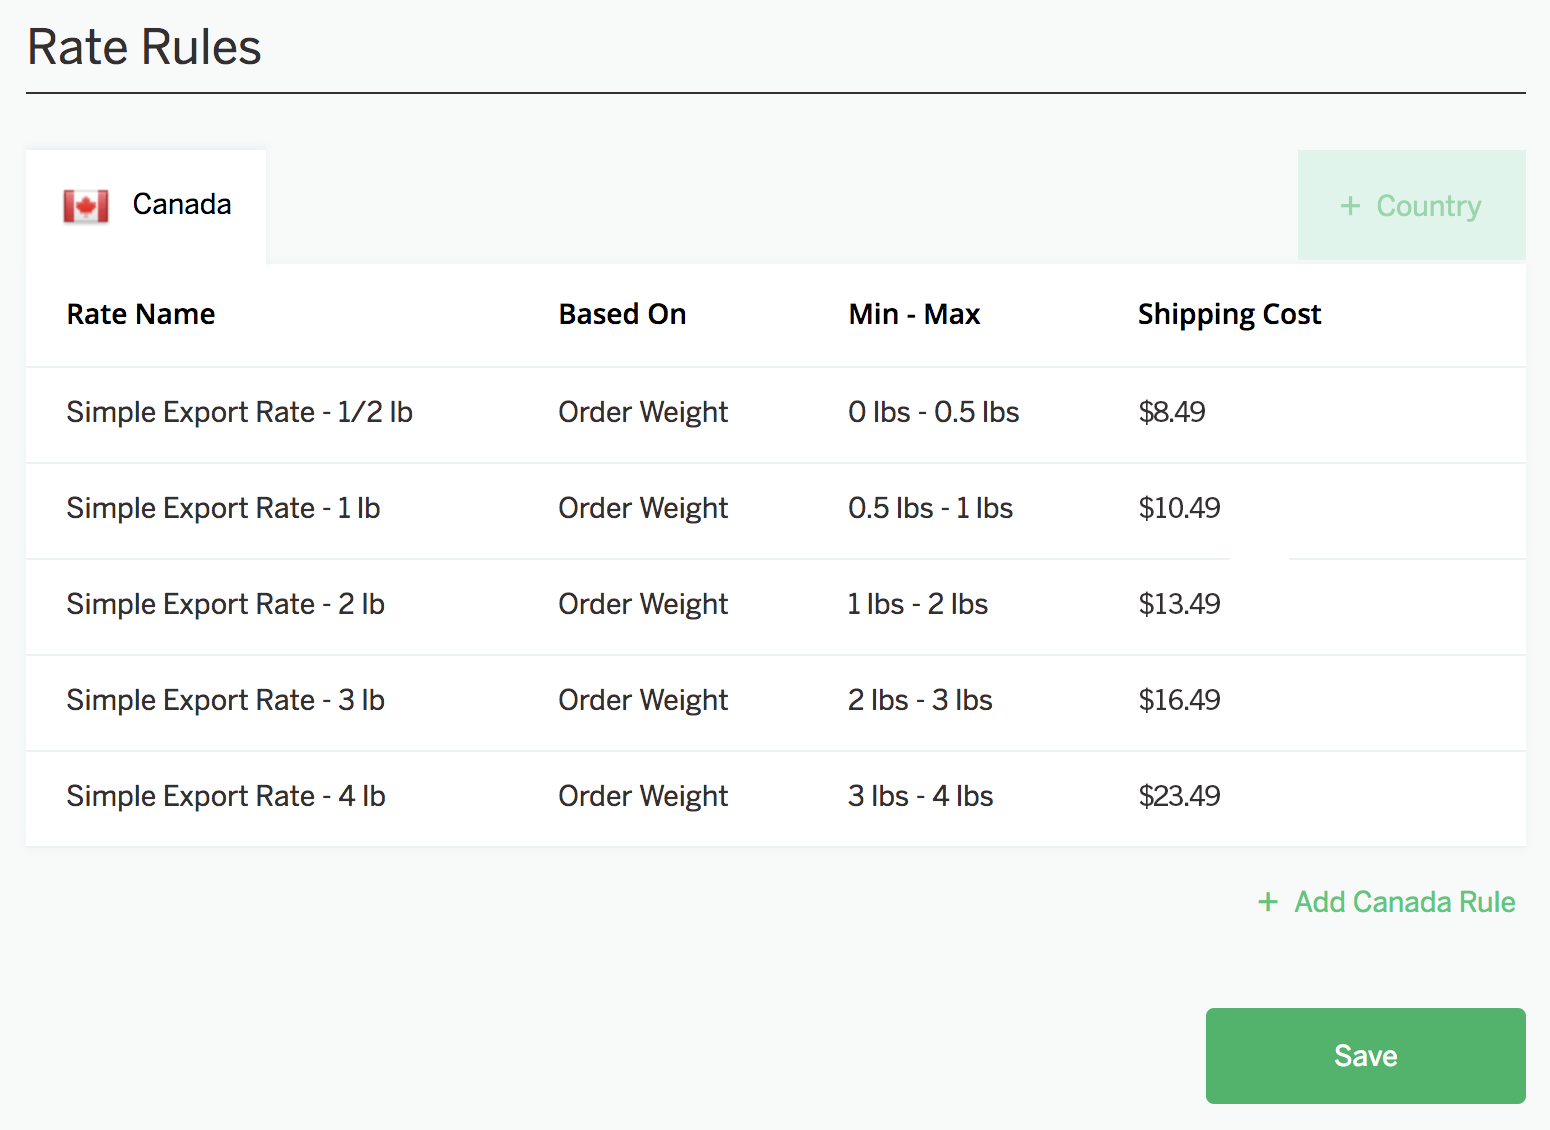 A screenshot showing the Rate Rules for 'Canada,' using Simple Export Rate's prices.